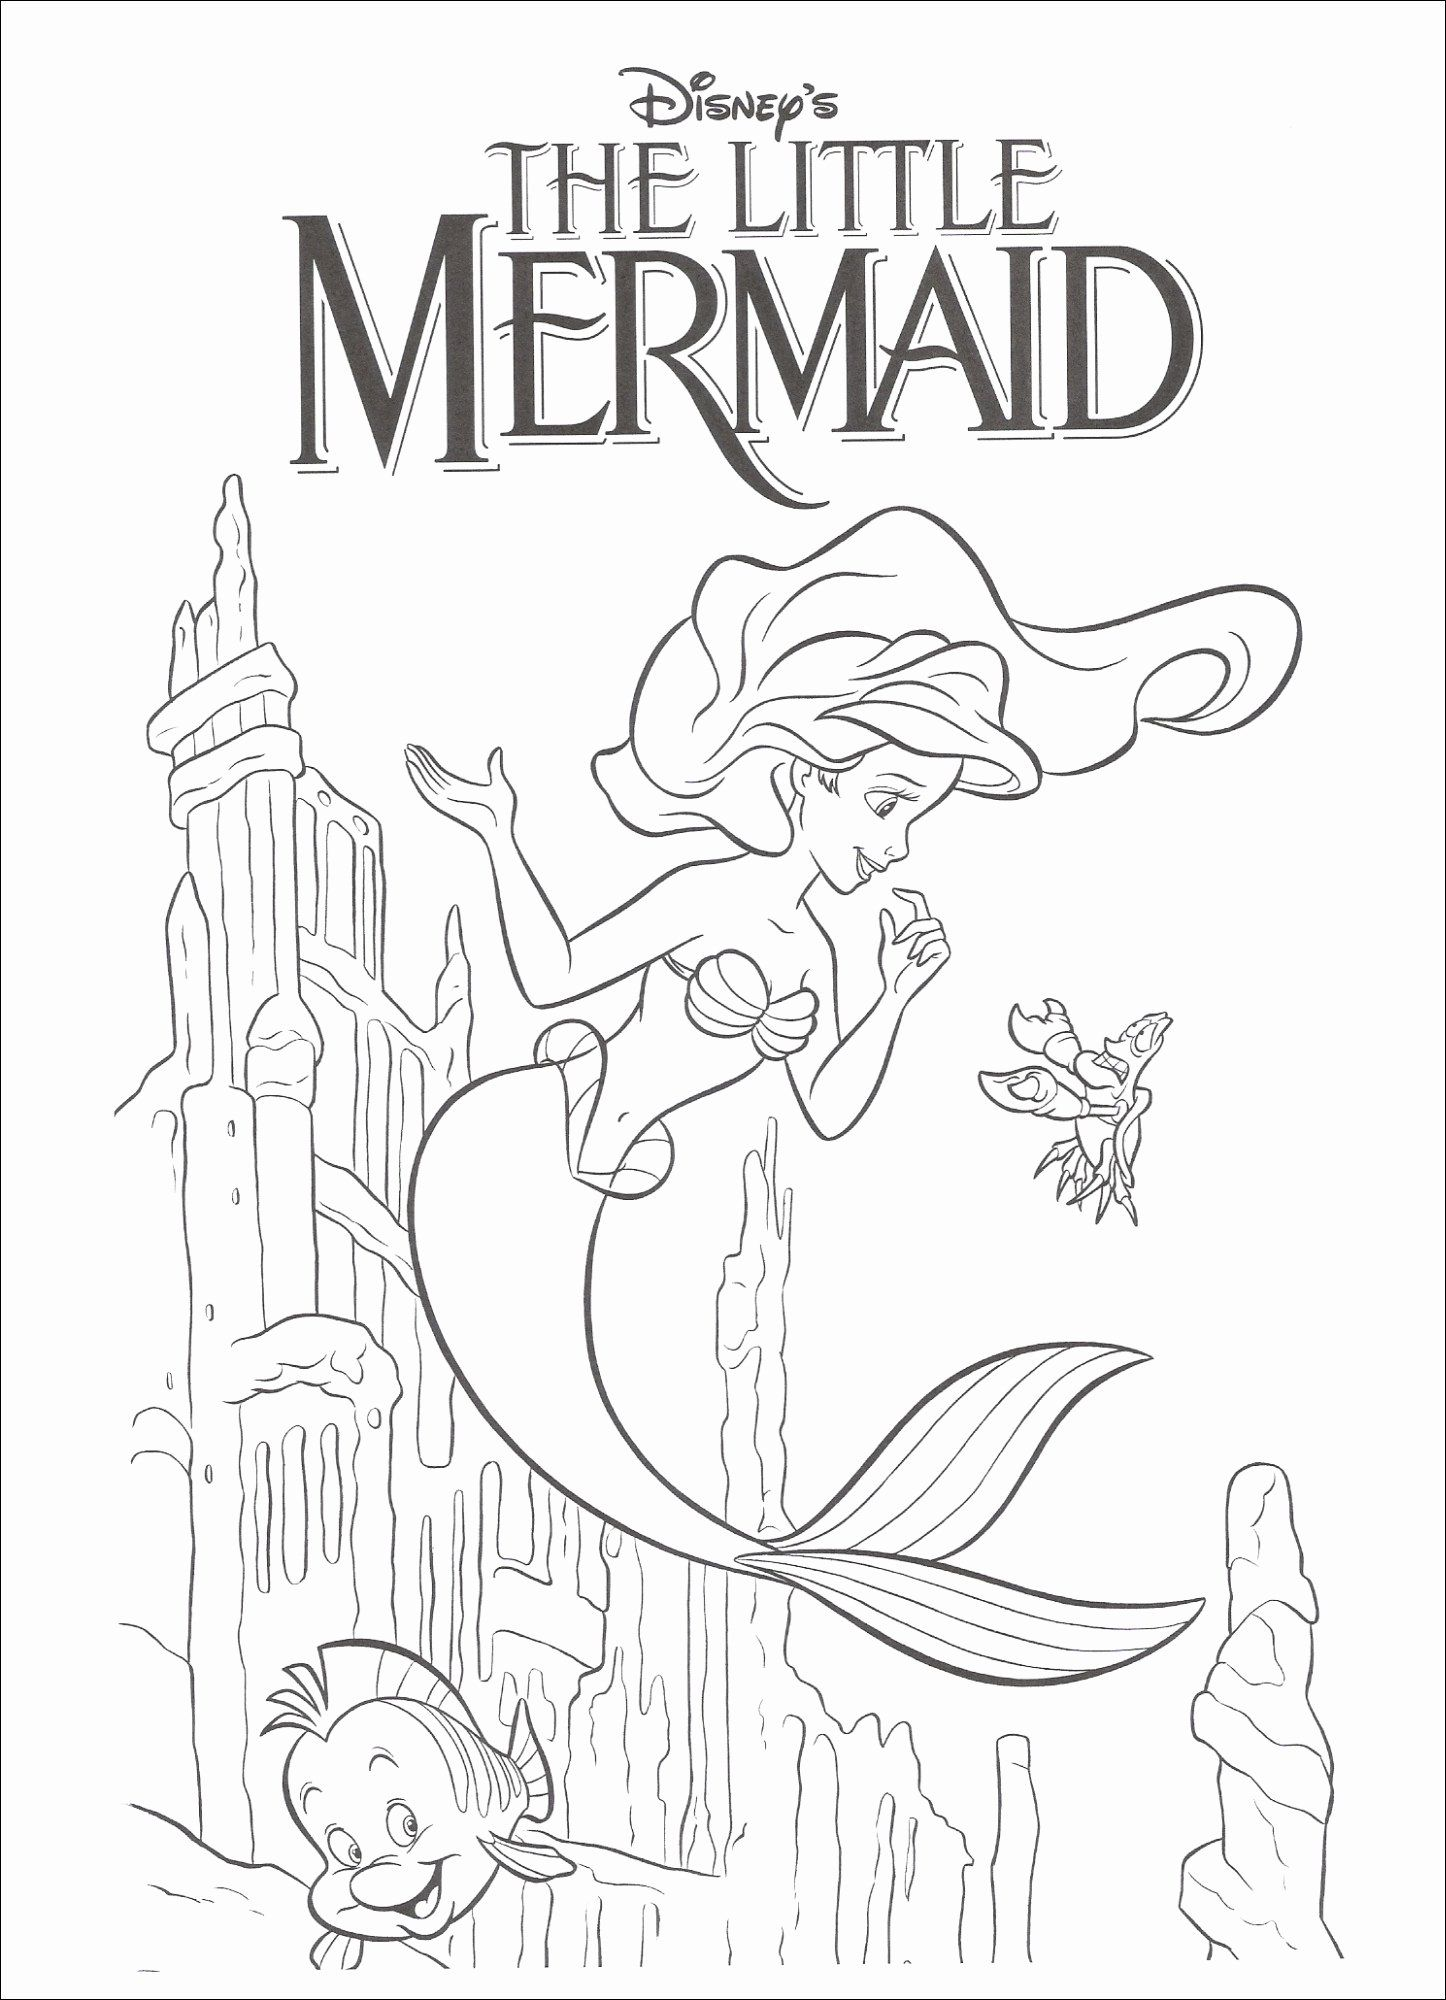 The Little Mermaid Coloring Page Luxury Coloring Pages Free Little Mermaid Coloring N Mermaid Coloring Pages Mermaid Coloring Book Coloring Pages Inspirational